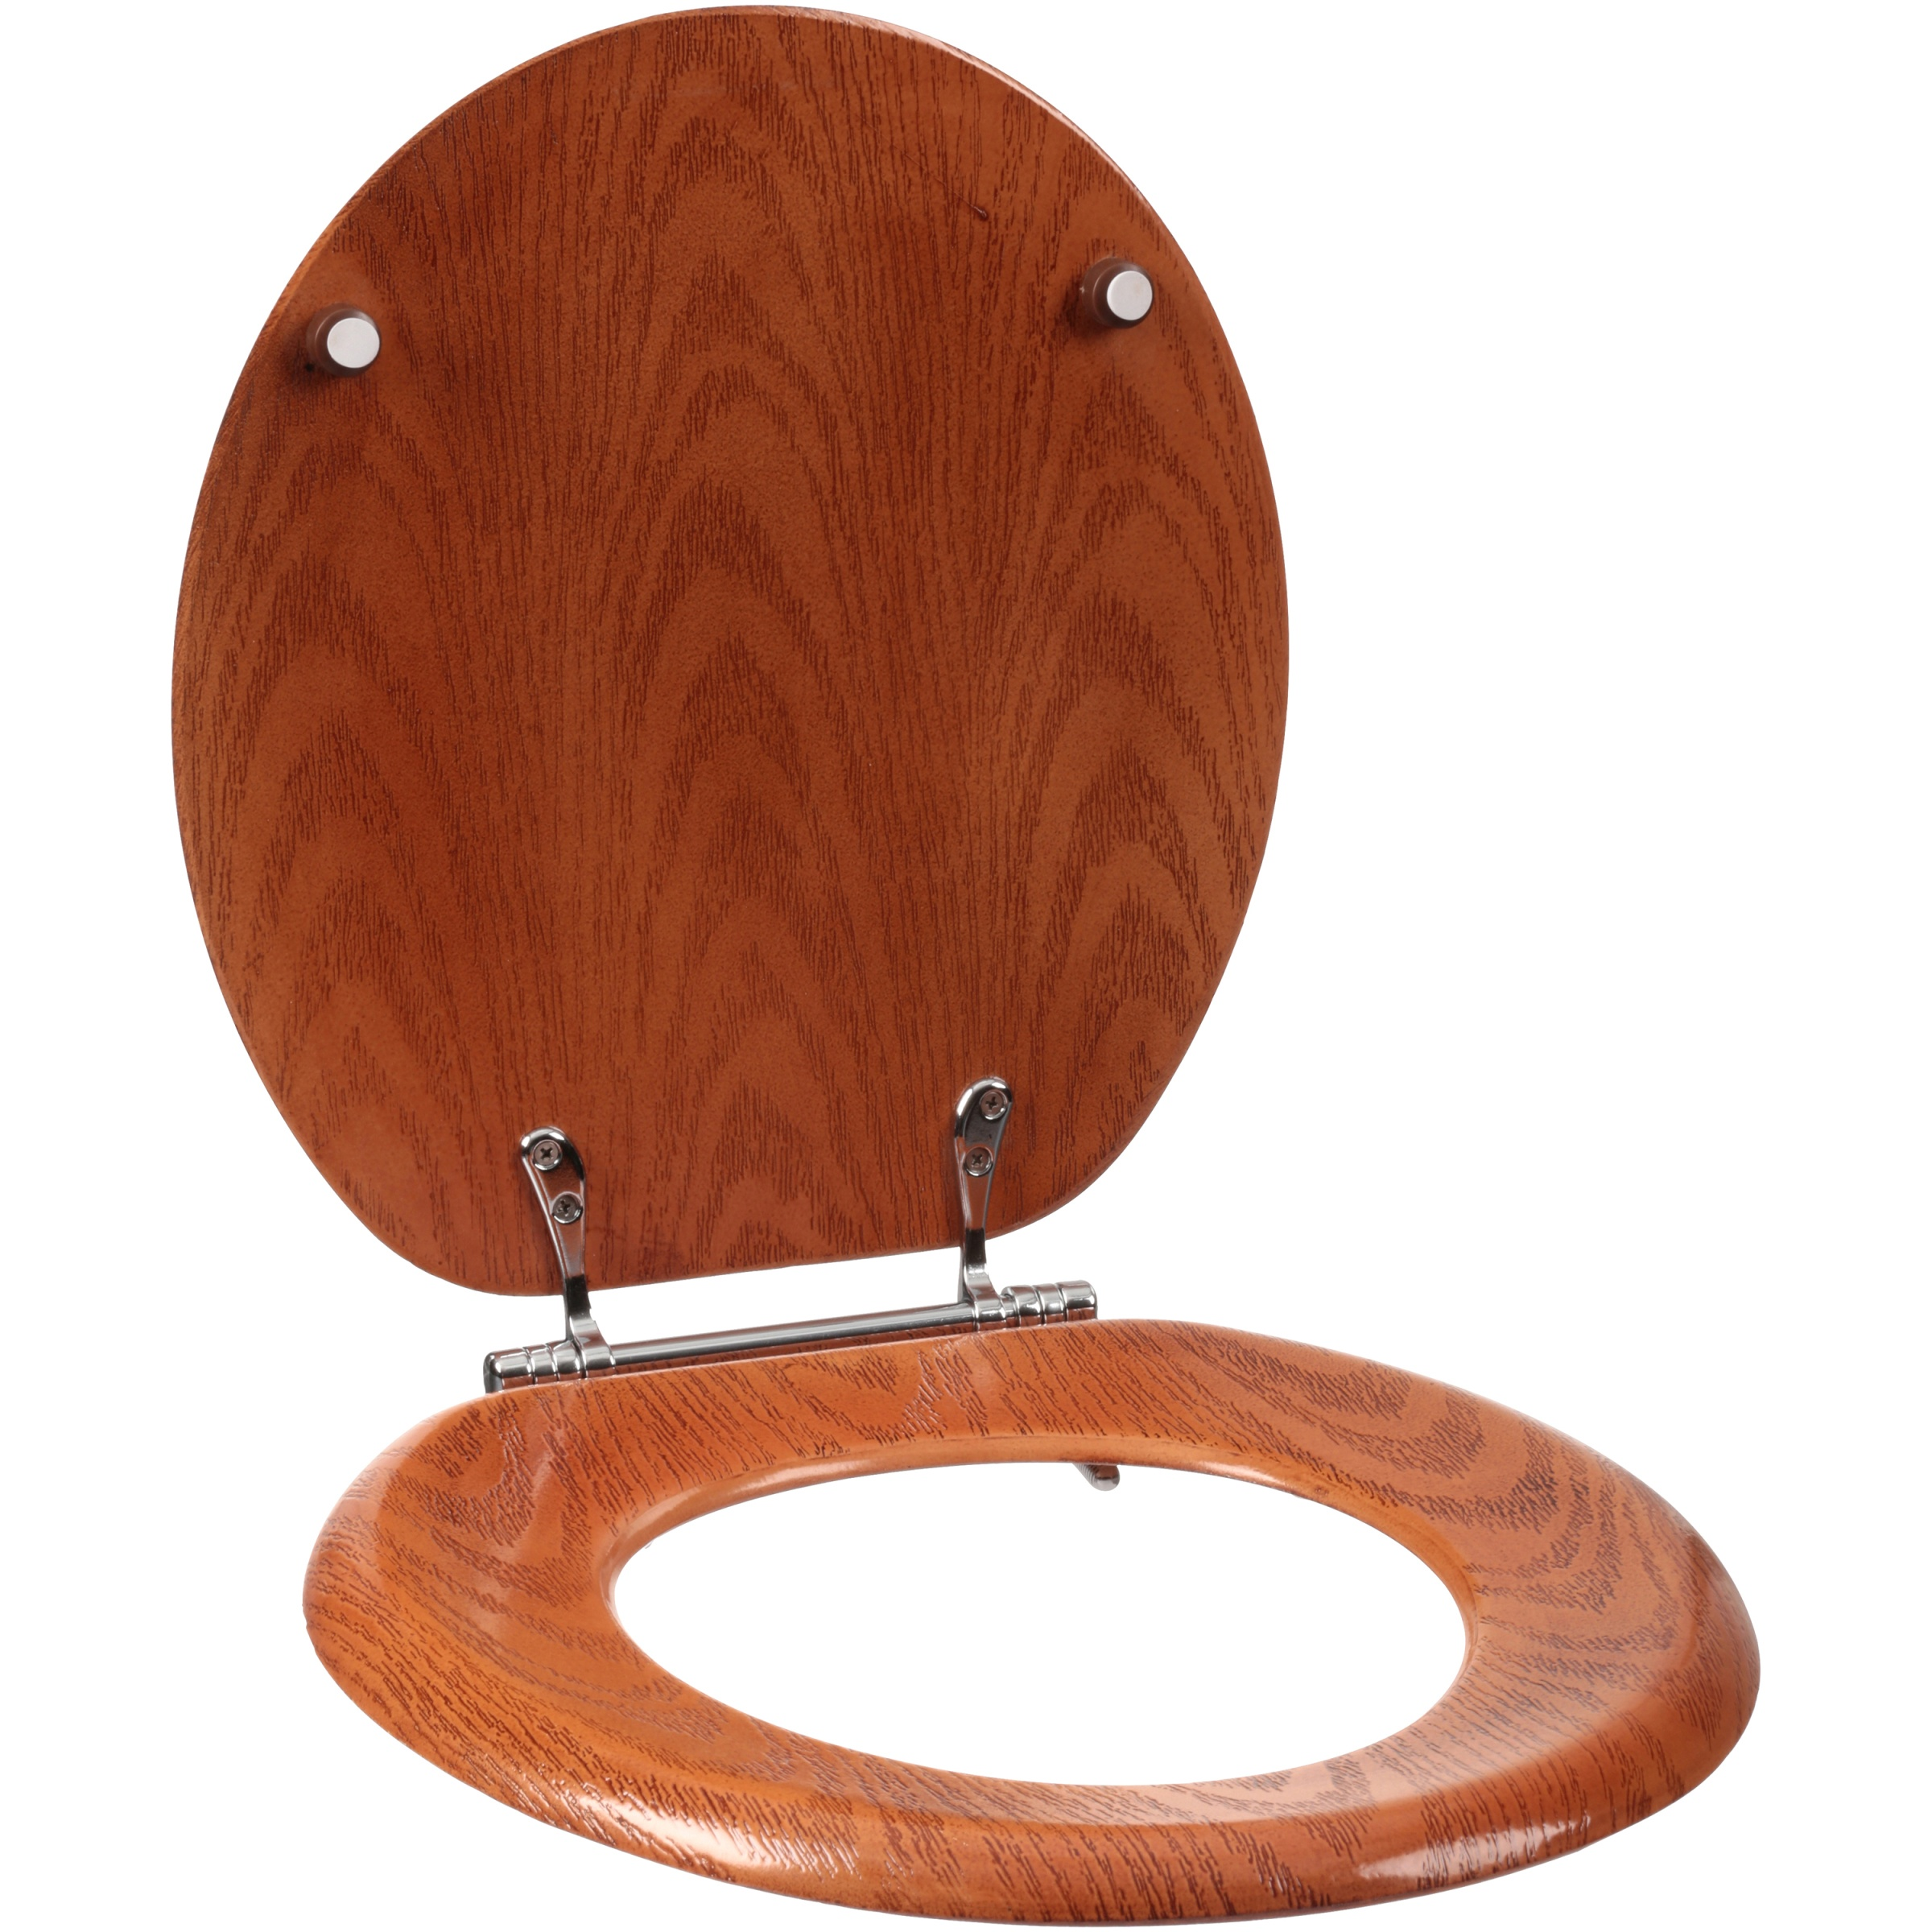 Exquisite® Wood Toilet Seat Pack